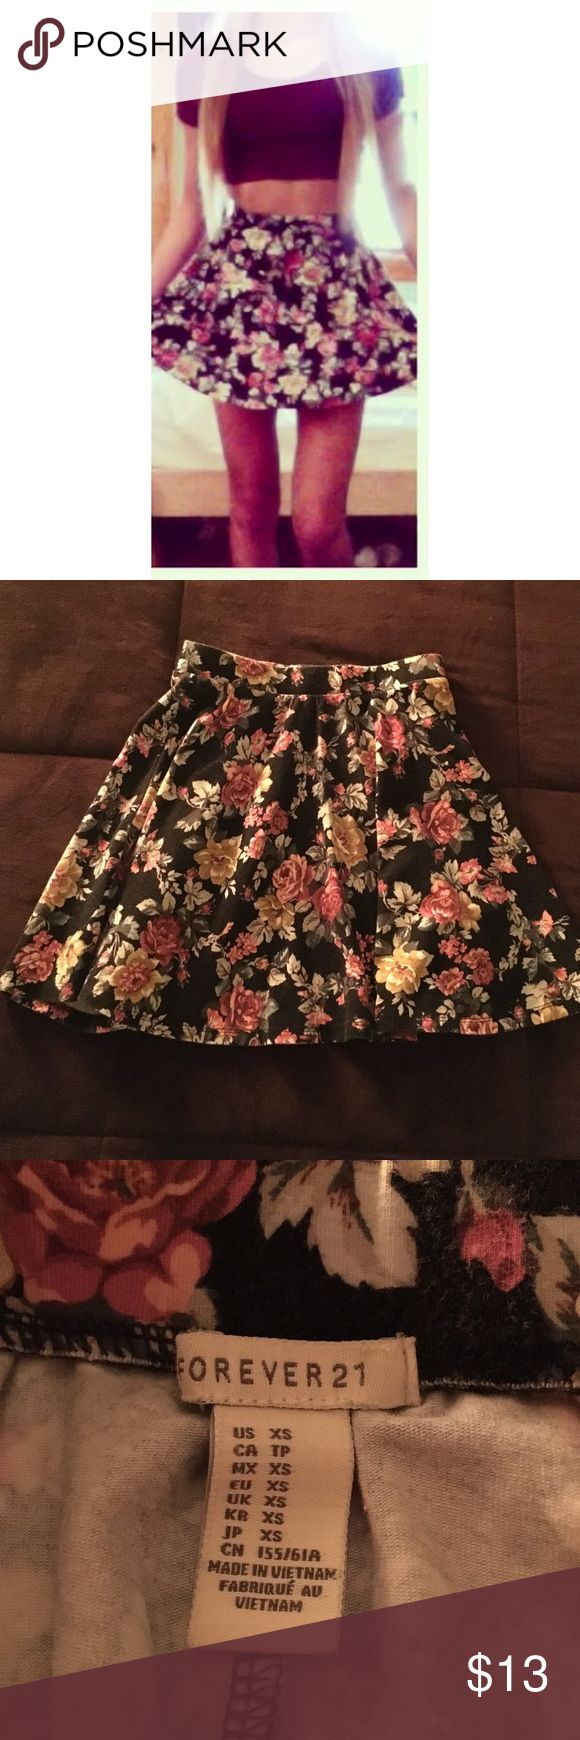 Floral on black high waisted skirt Forever 21. XS fit. High waisted and mini. Very good condition. Forever 21 Skirts Mini